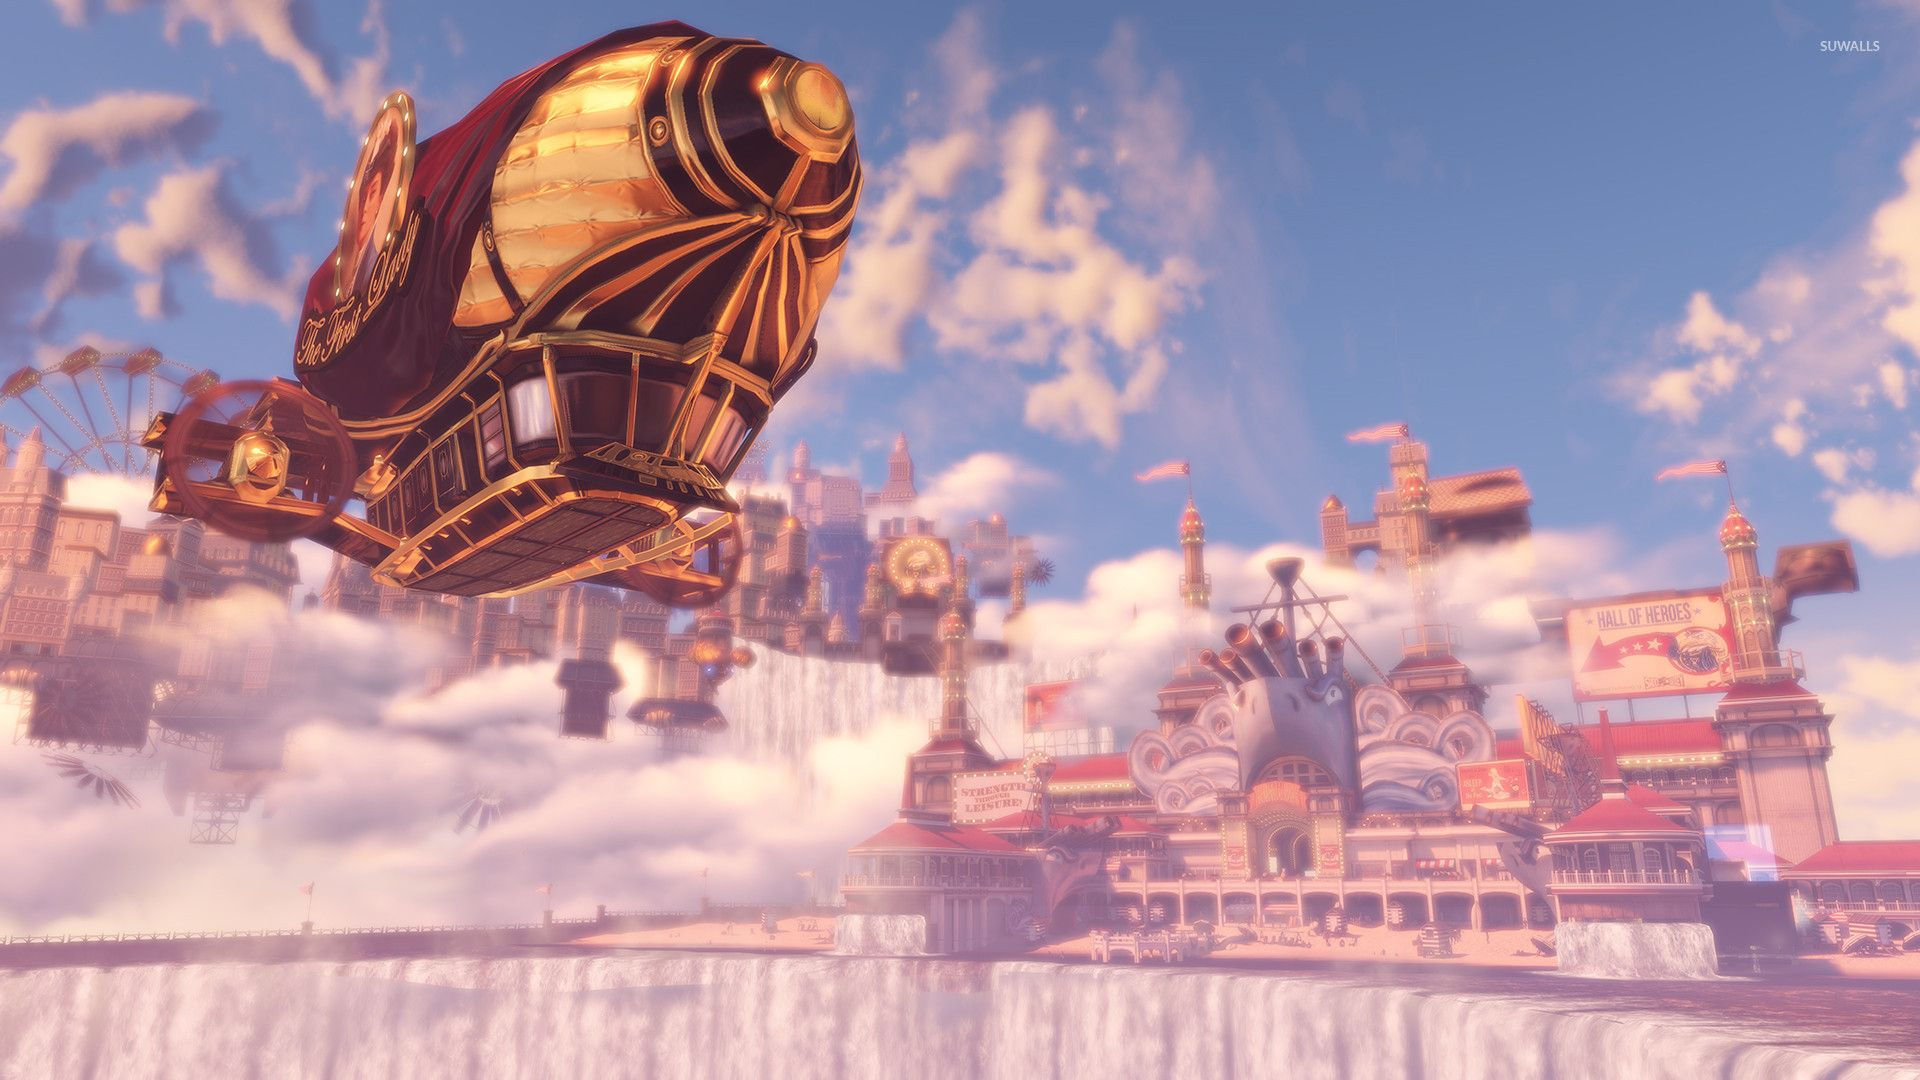 1920x1080 City On The Waterfalls Edge In BioShock Infinite Wallpaper